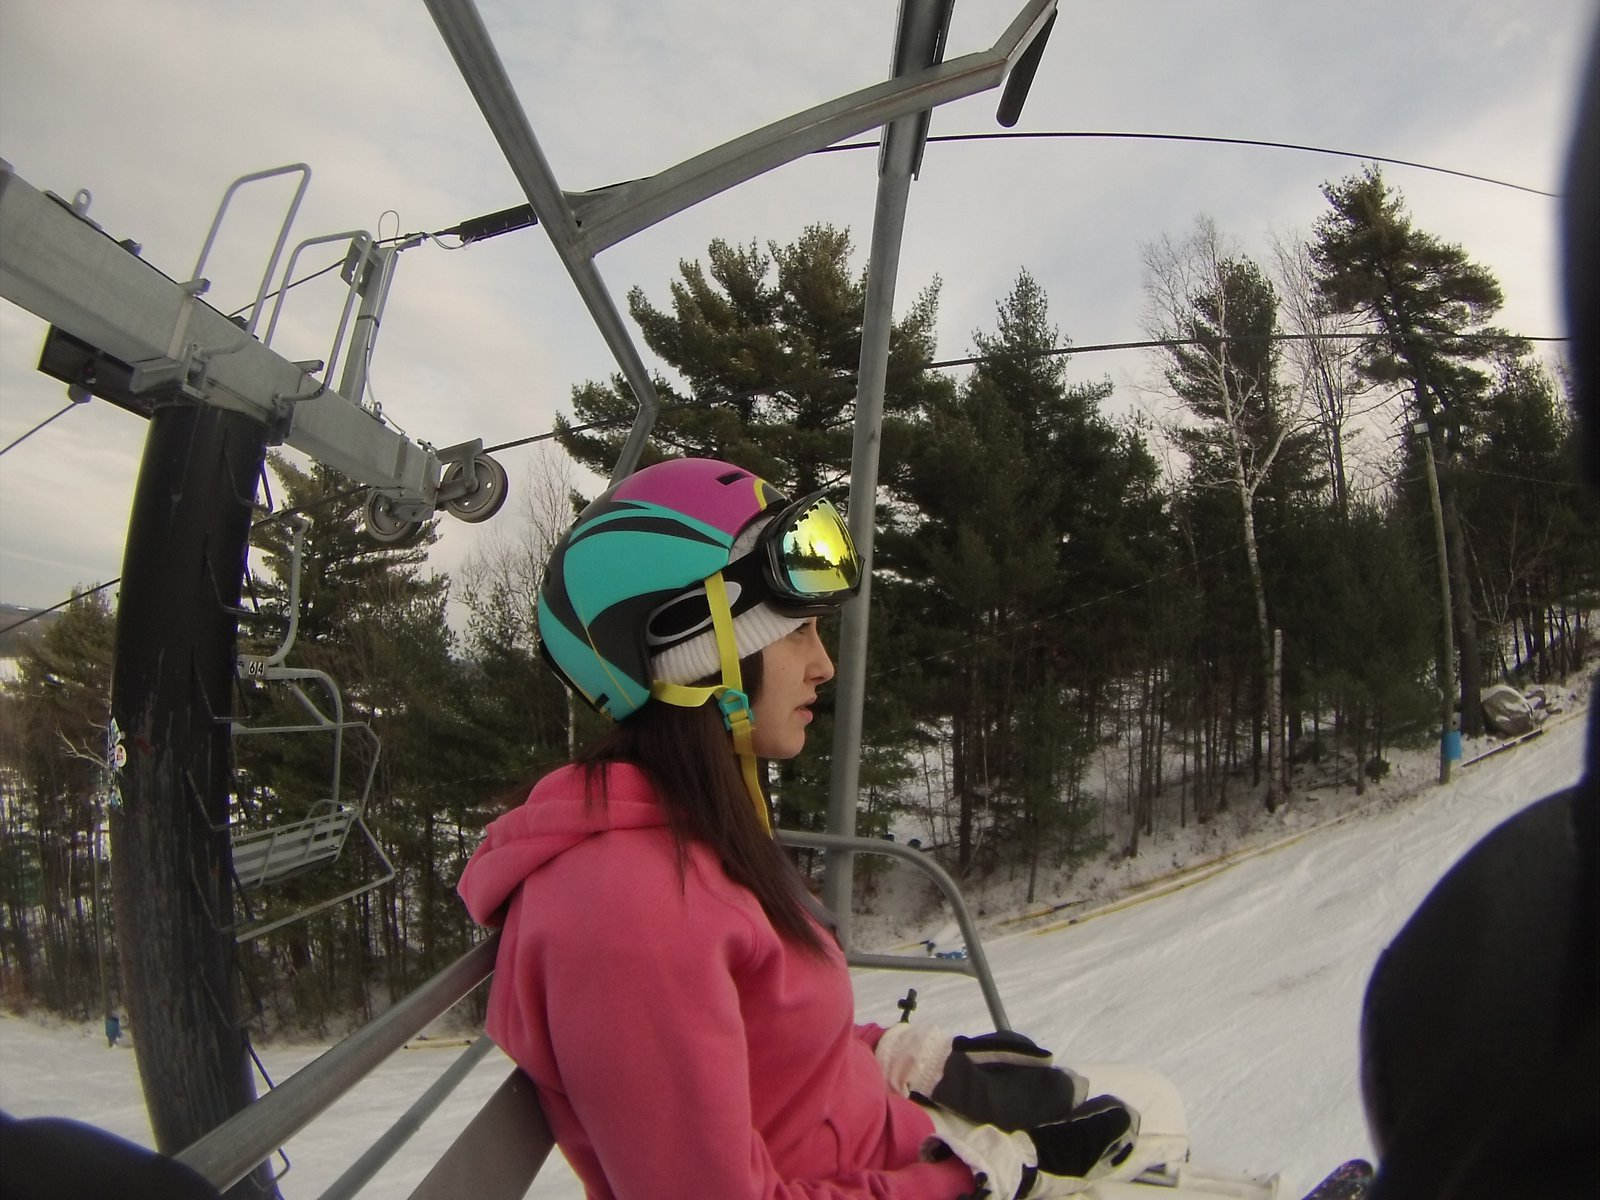 Hannah Brutman on the Chairlift